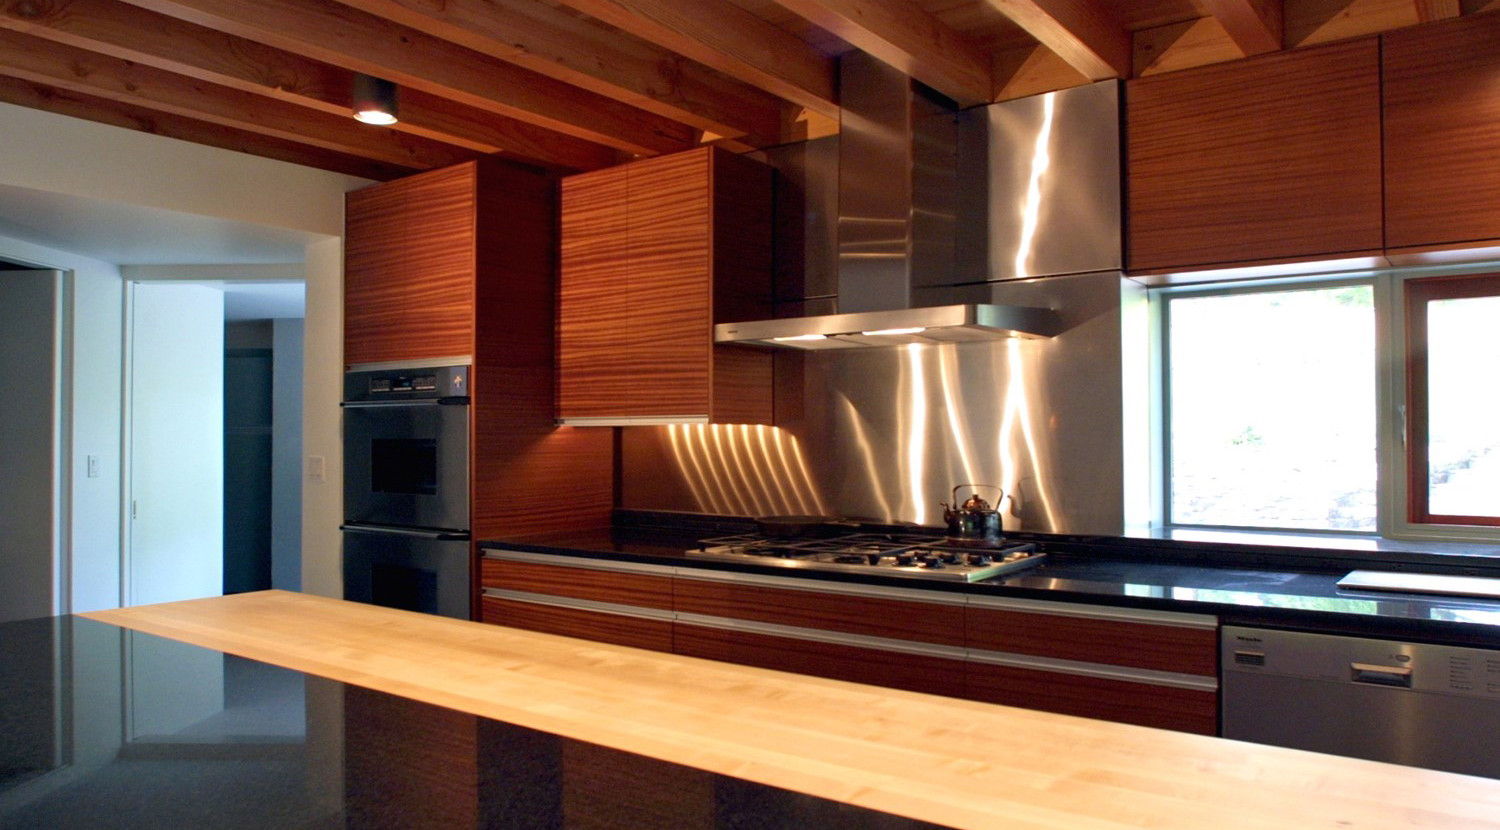 WOOD, STONE, AND METAL KITCHEN MATERIALS